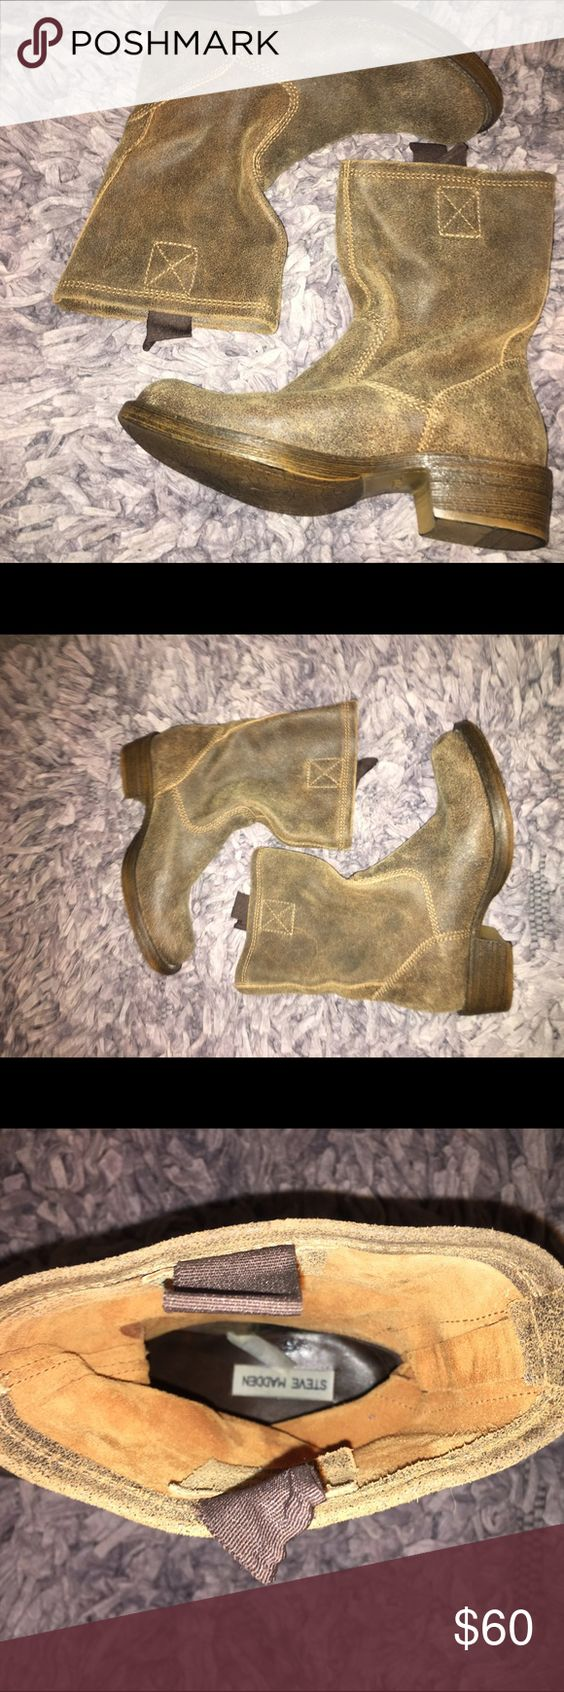 Steve Madden western styled cow boot Steve Madden western styled boots NWOT tags Steve Madden Shoes Ankle Boots & Booties